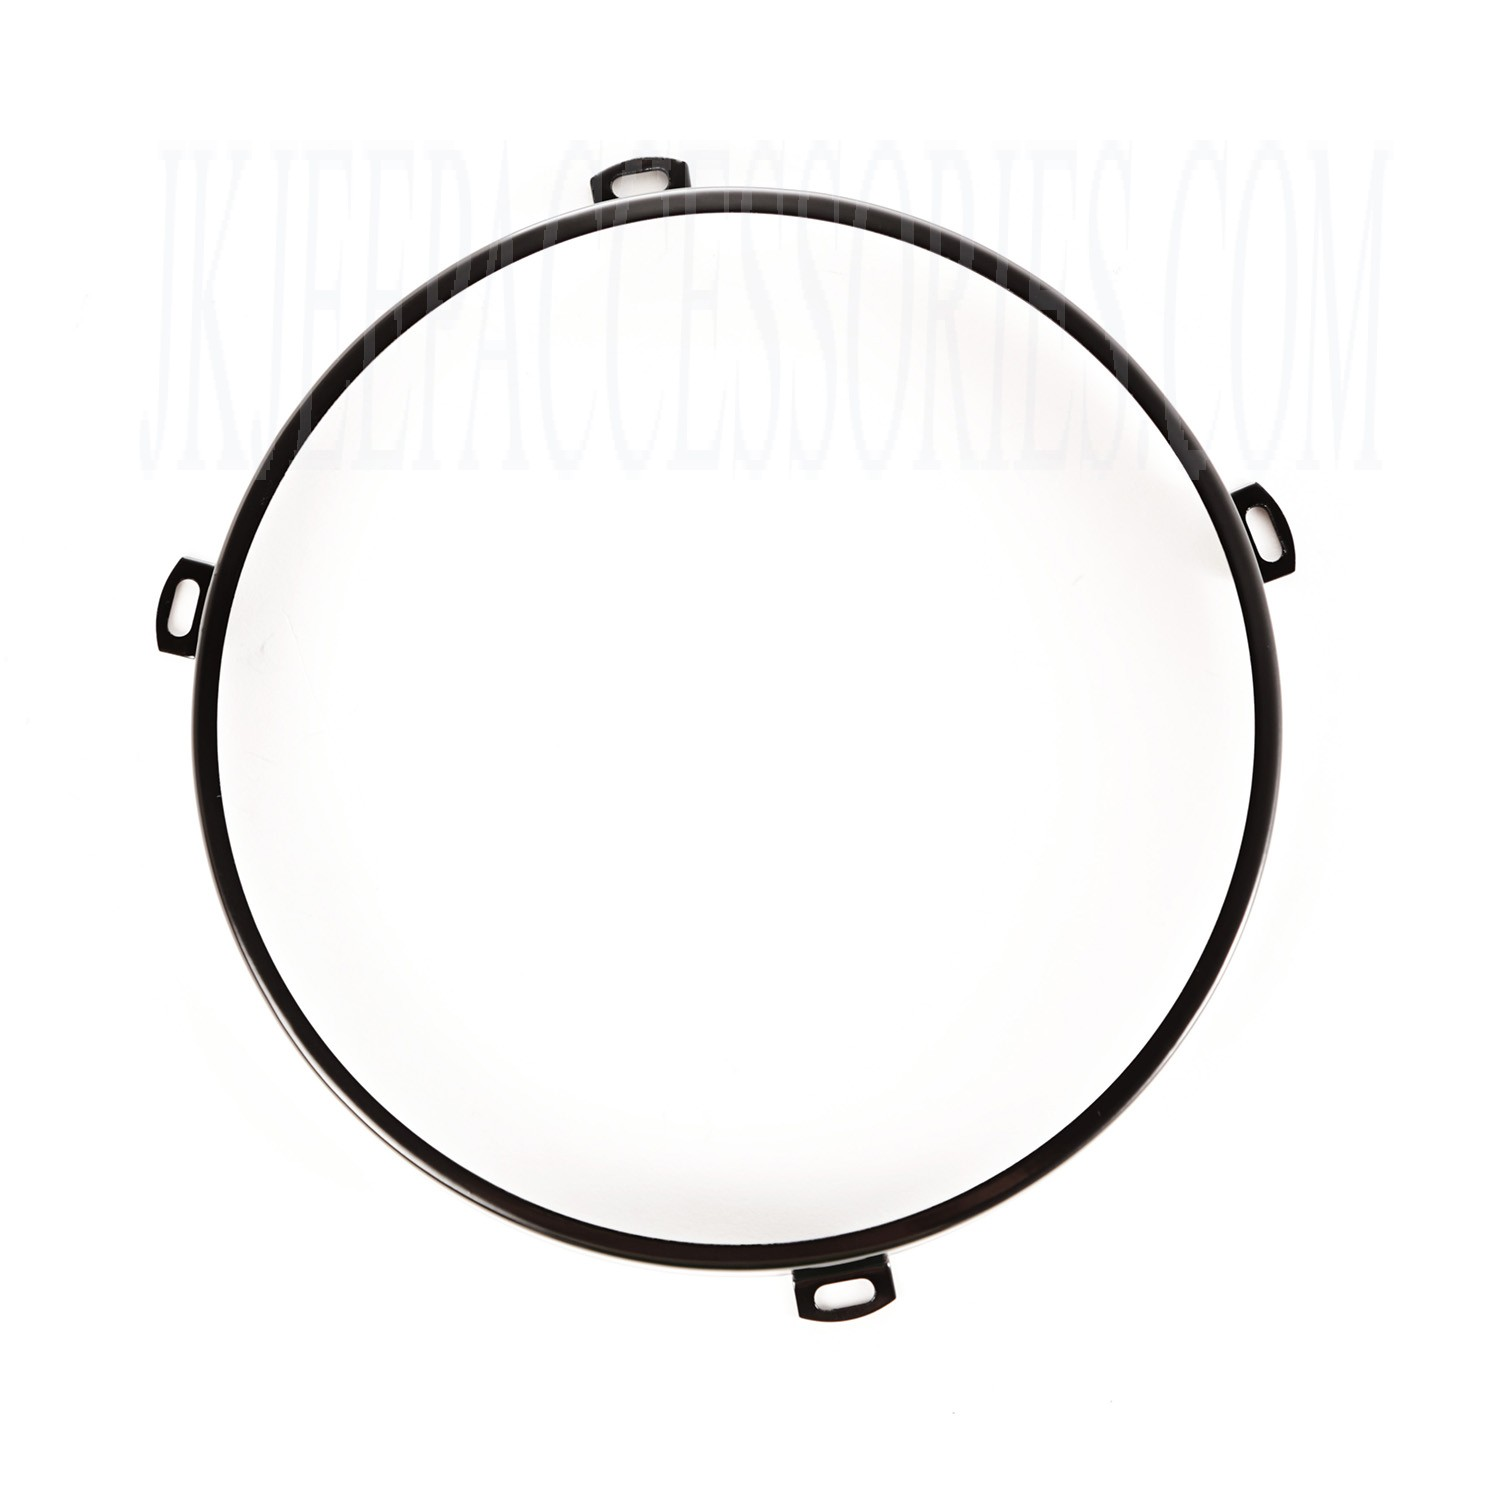 Headlight Retaining Ring; 07-16 Wrangler JK/JKU